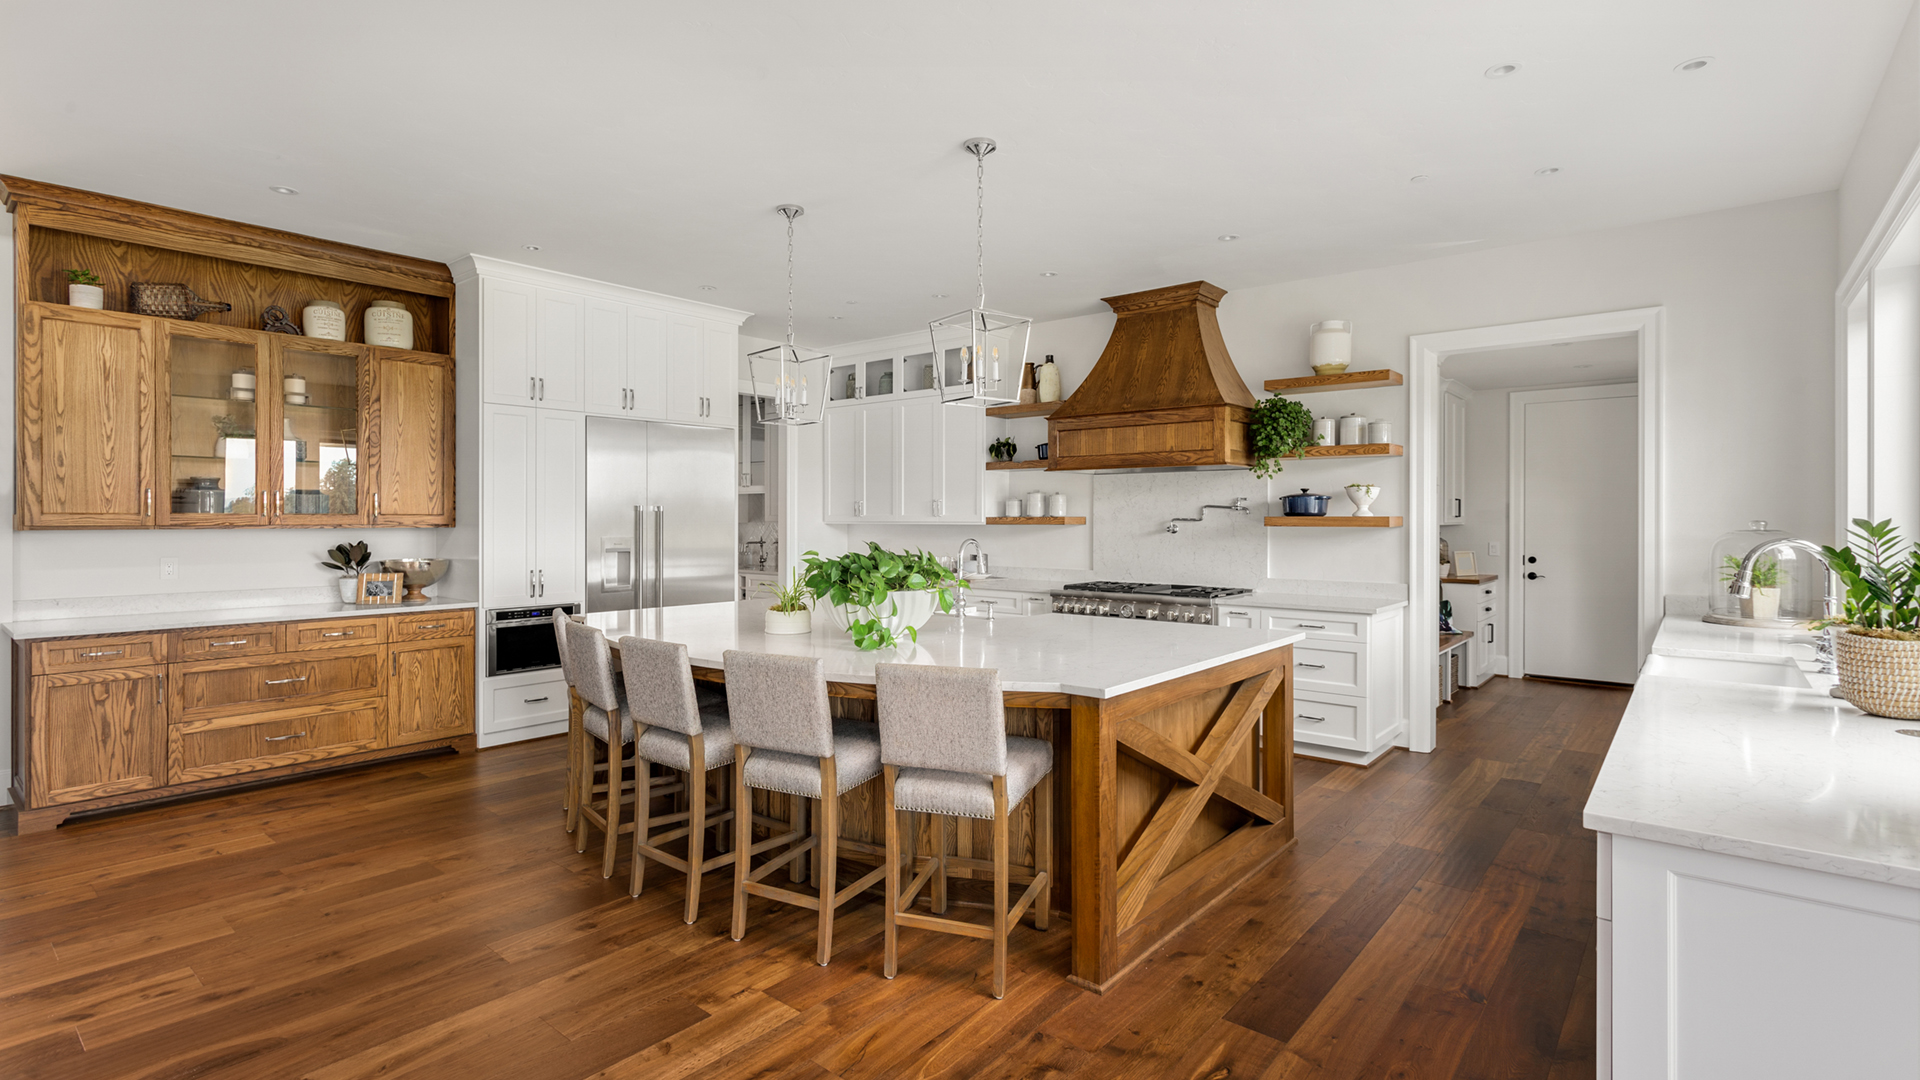 4 Tips For A Seamless Home Renovation